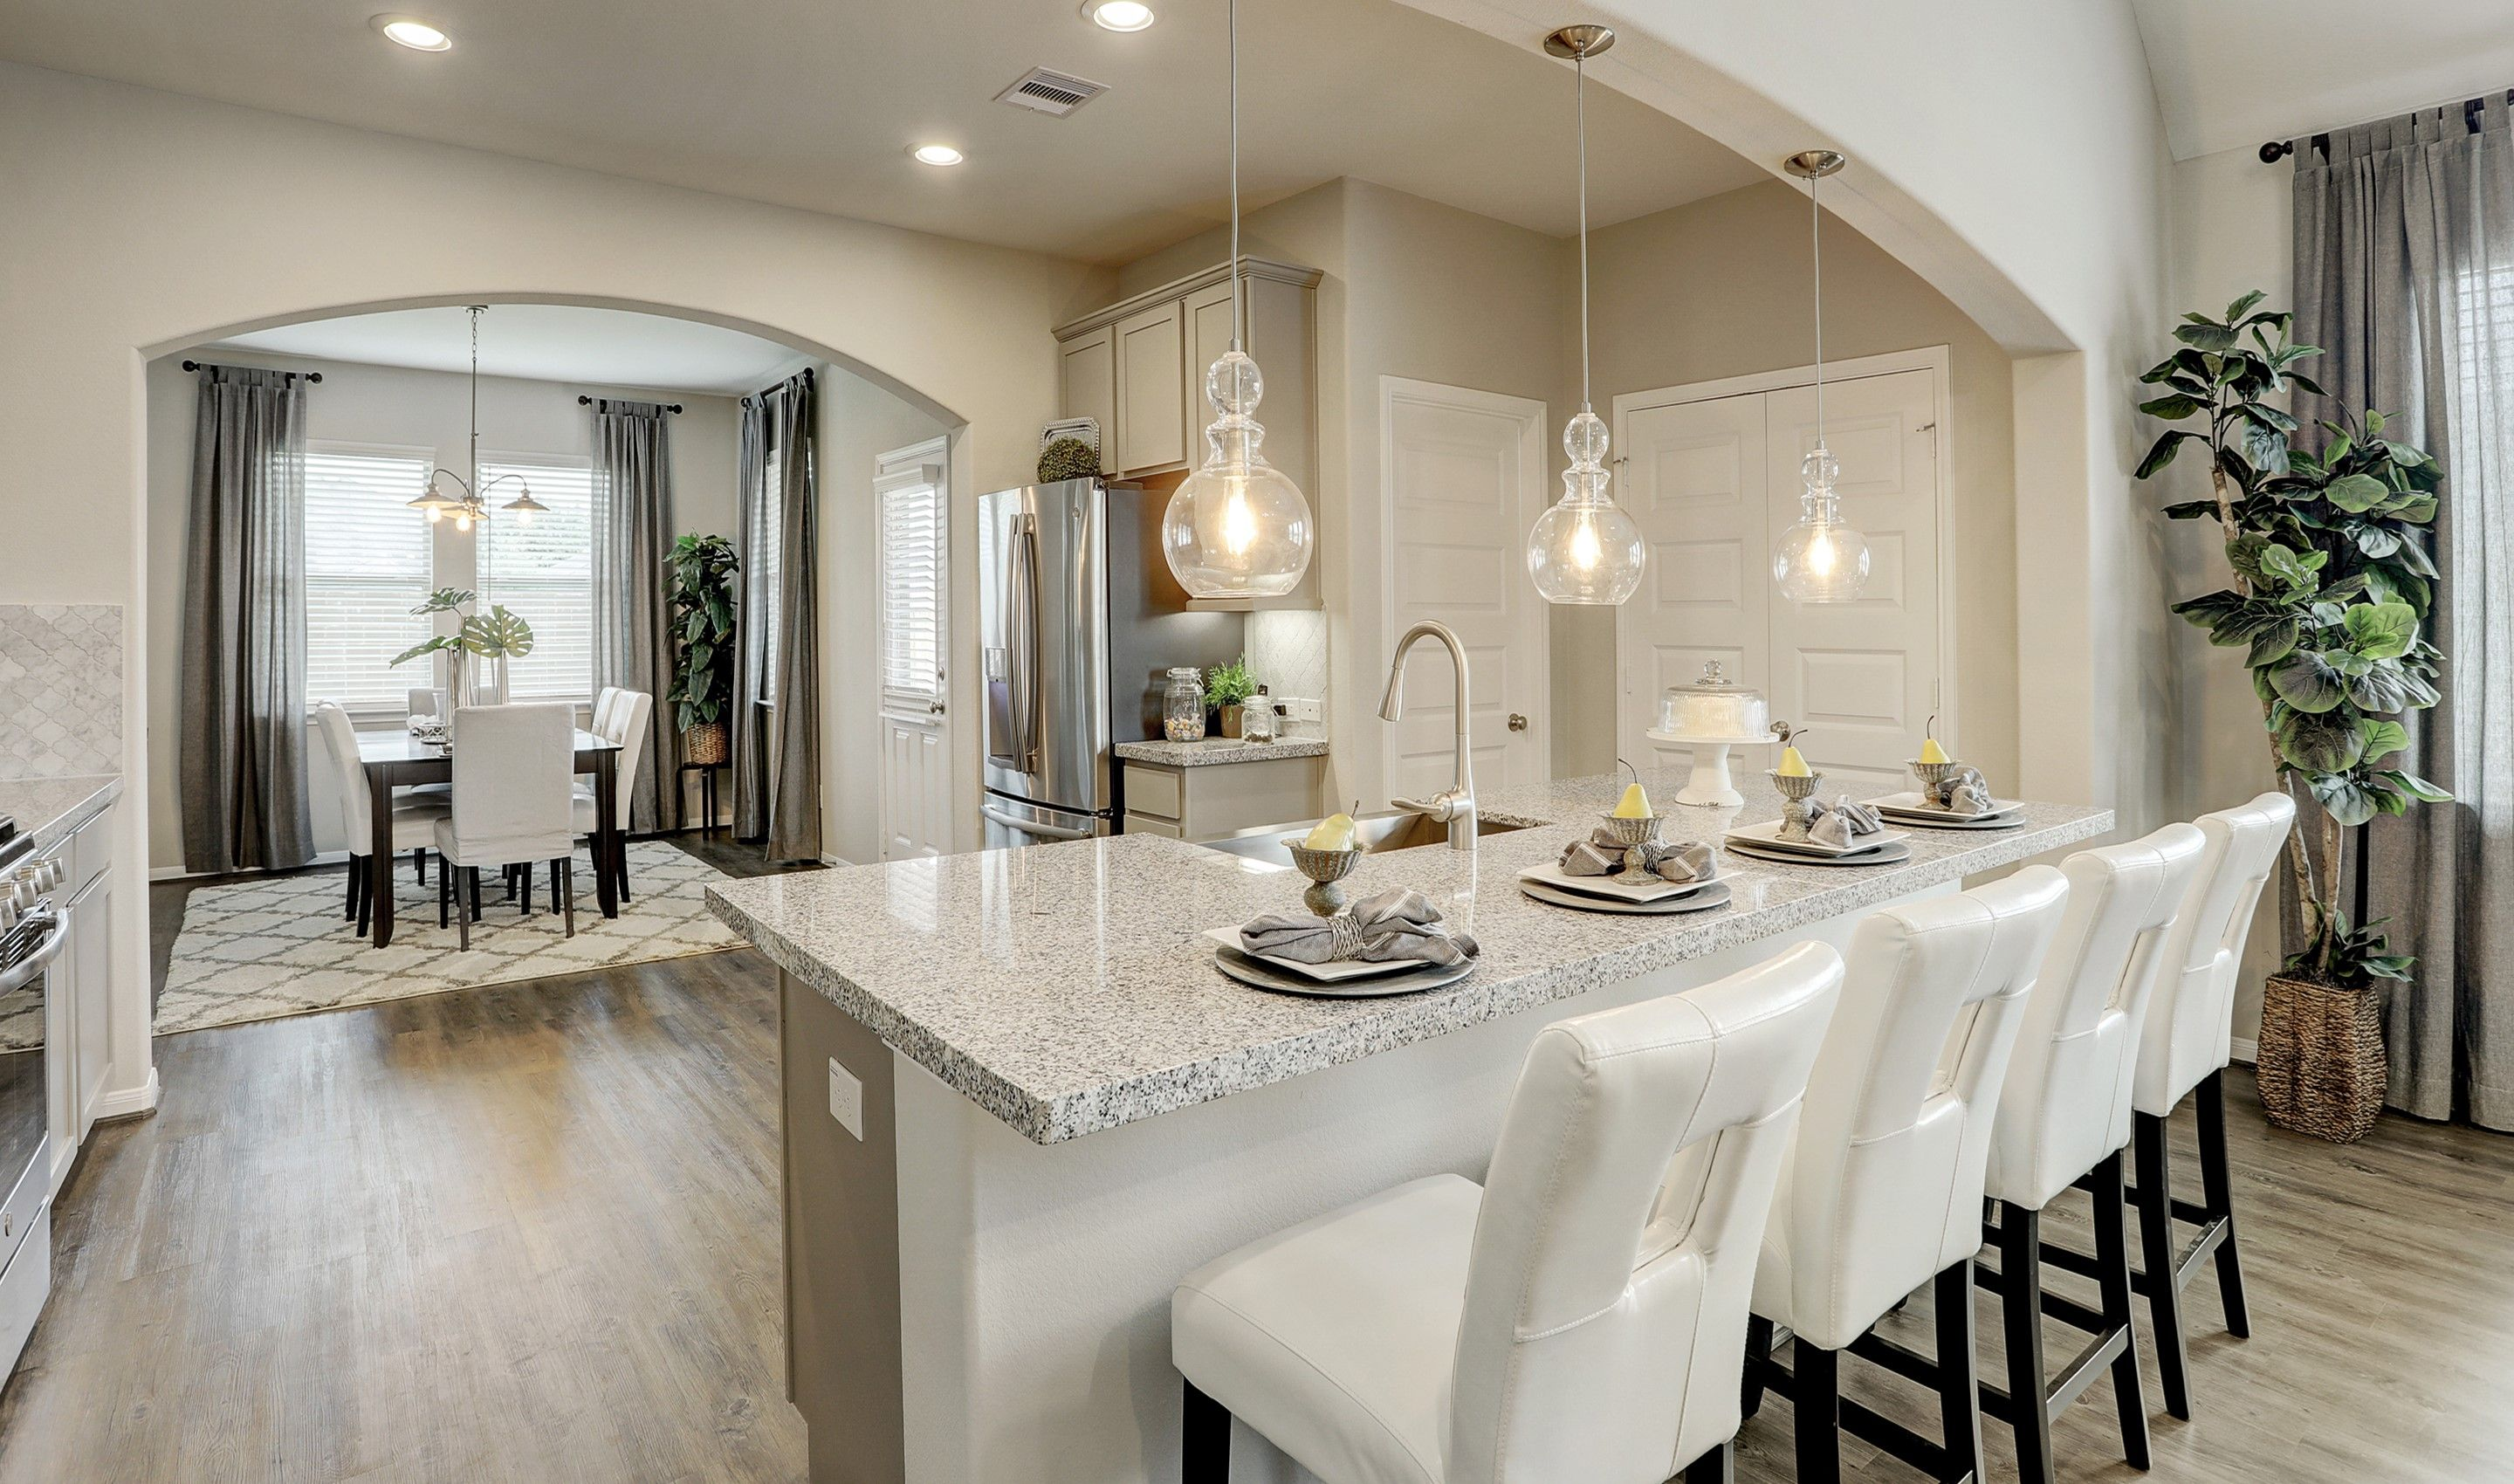 Kitchen featured in the Juniper II By K. Hovnanian® Homes in Houston, TX